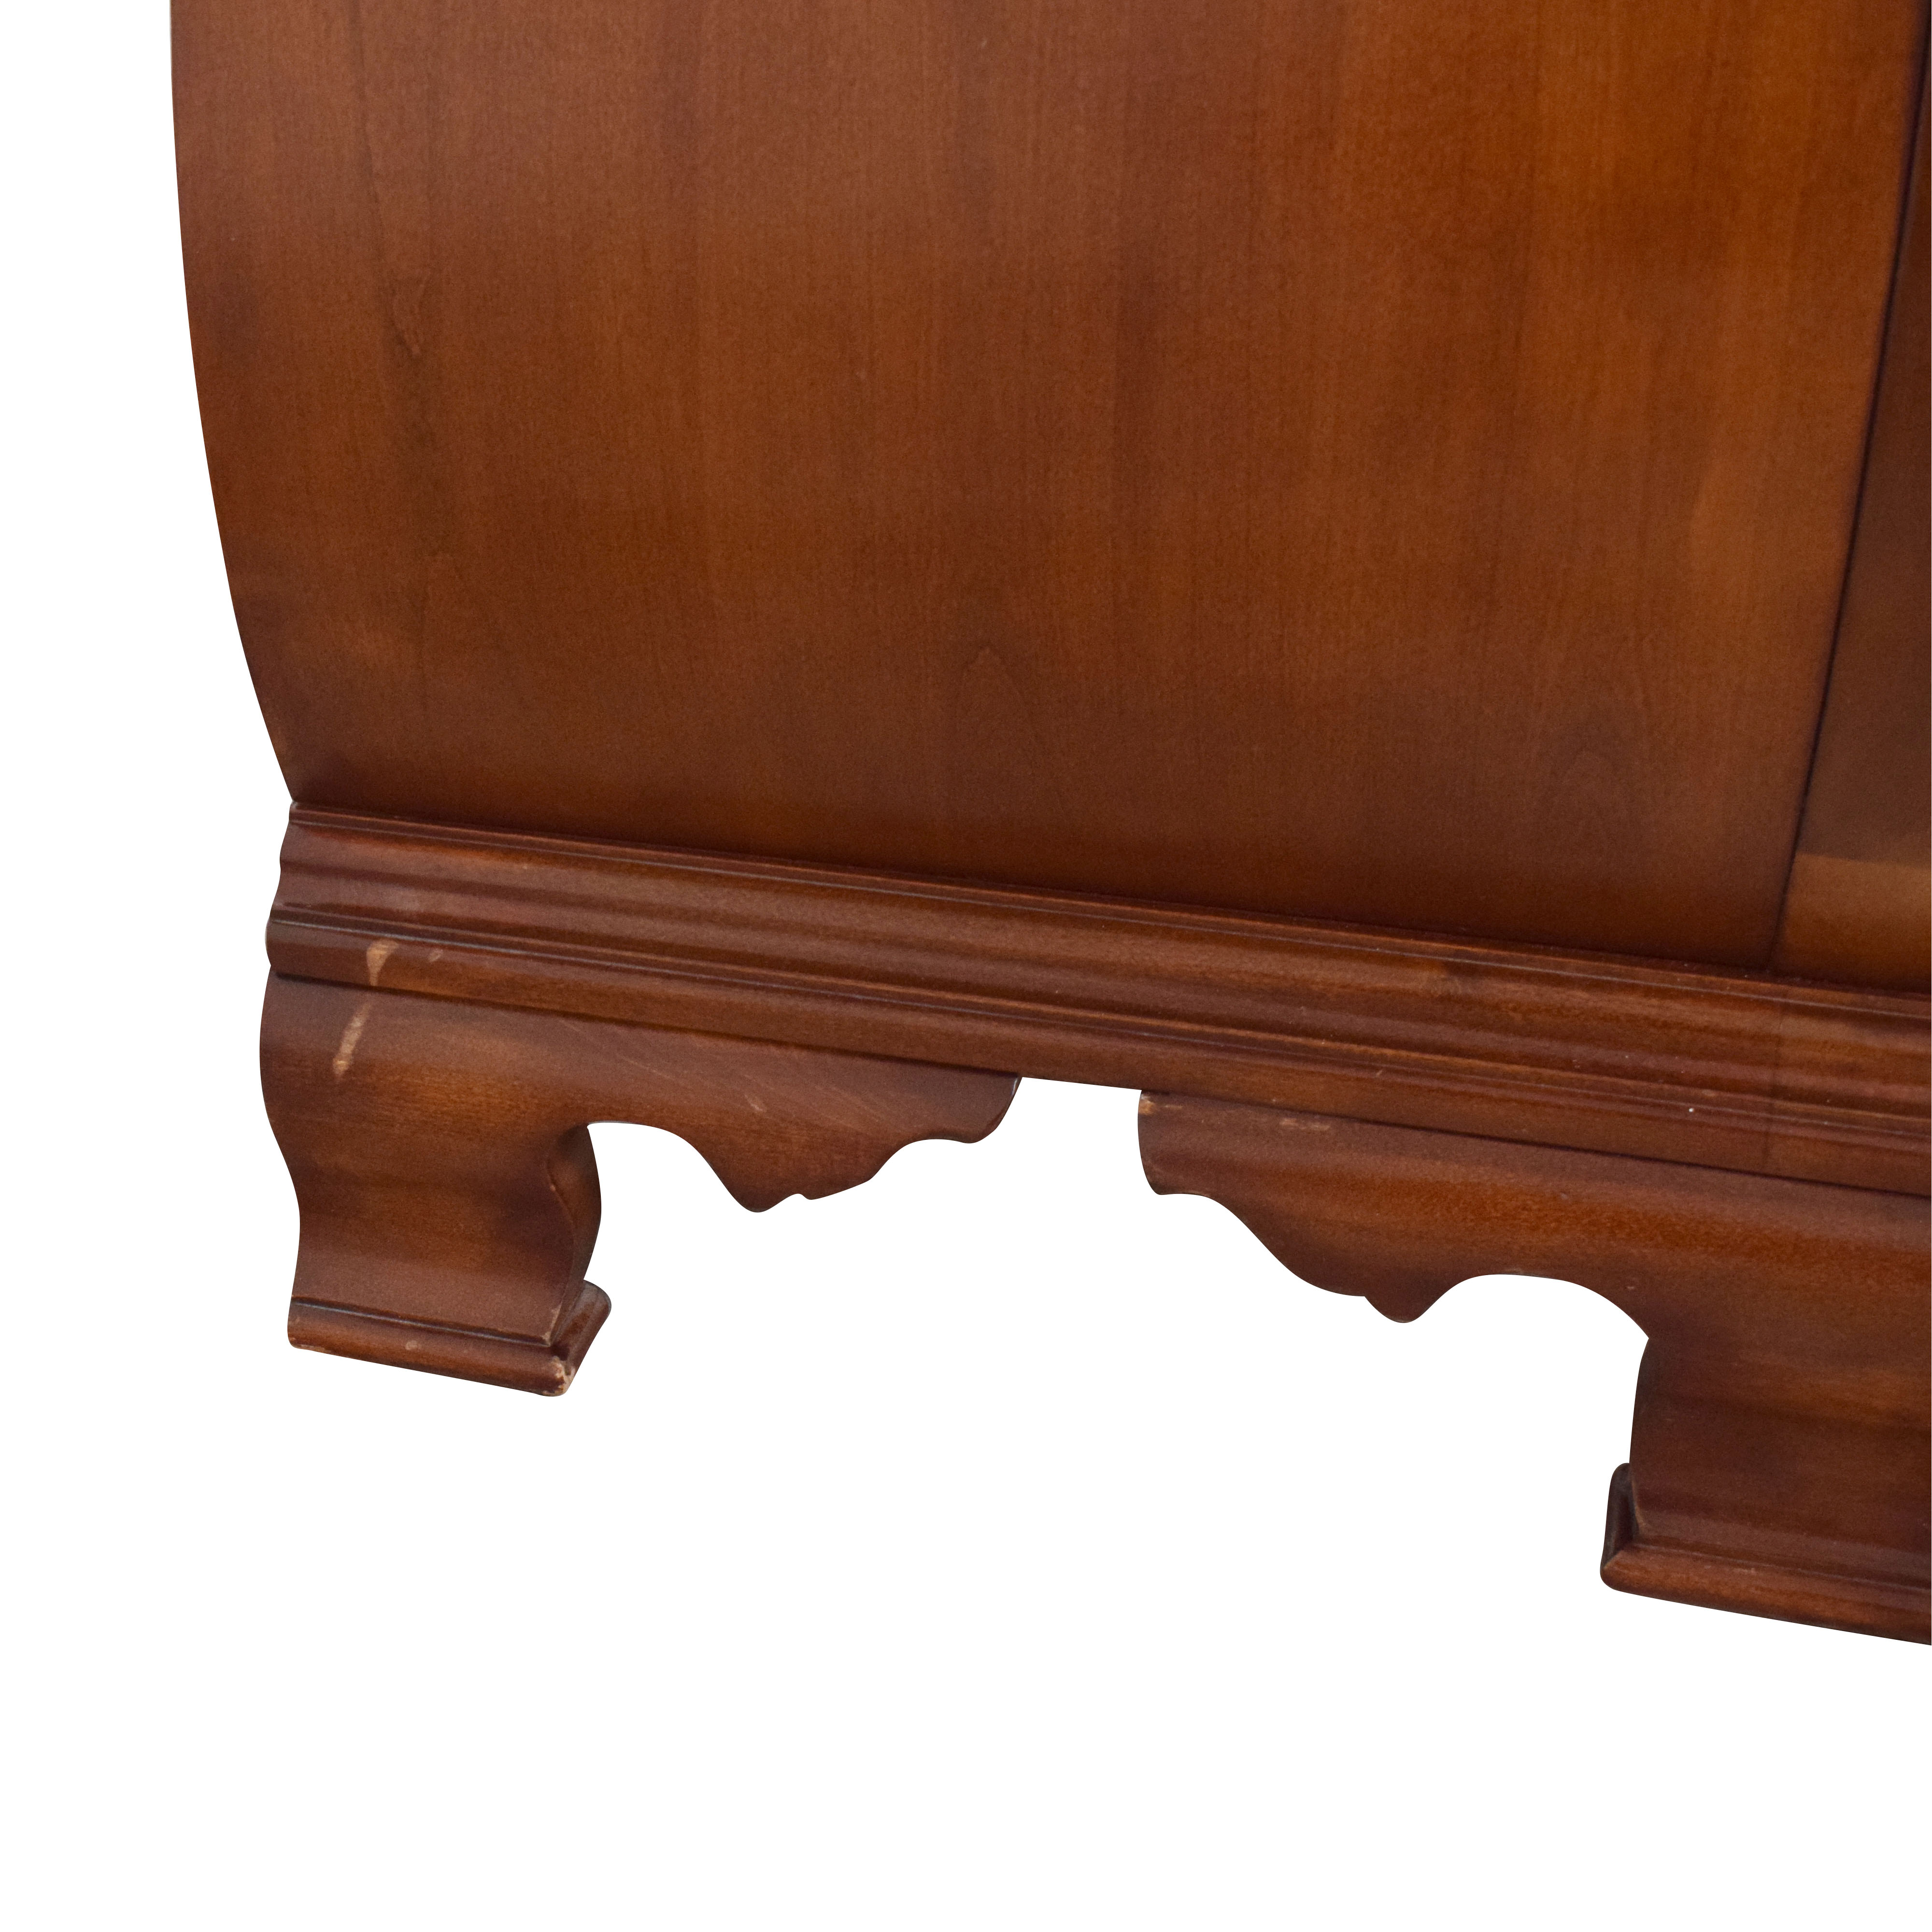 Thomasville Collectors Bombay Chest Nightstand / End Tables